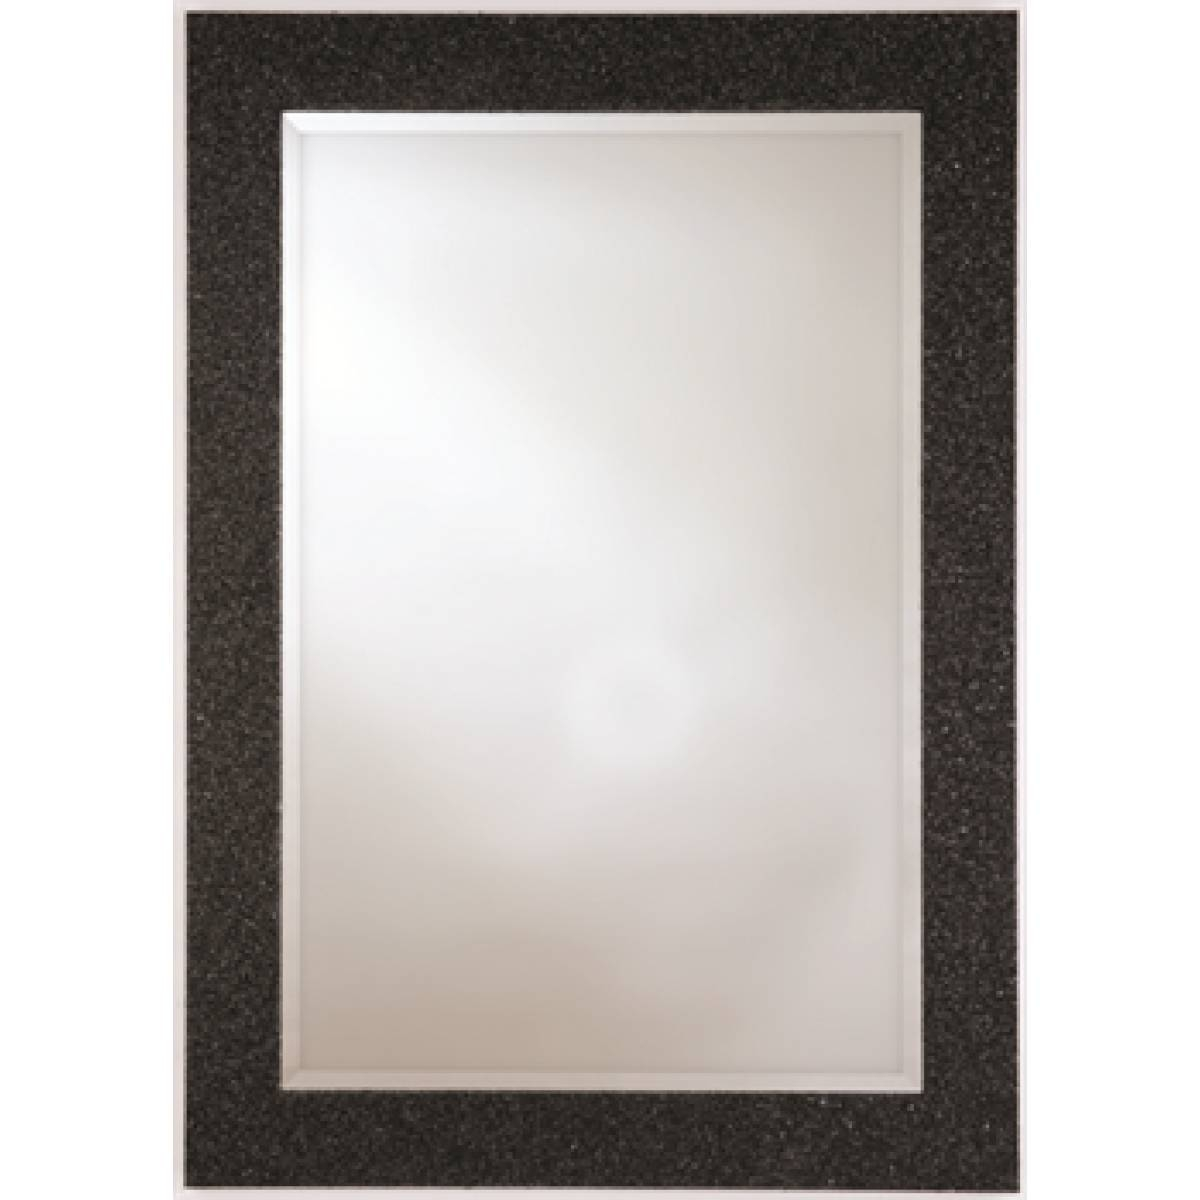 Glitter Mirror | Inovodecor inside Glitter Frame Mirrors (Image 16 of 25)